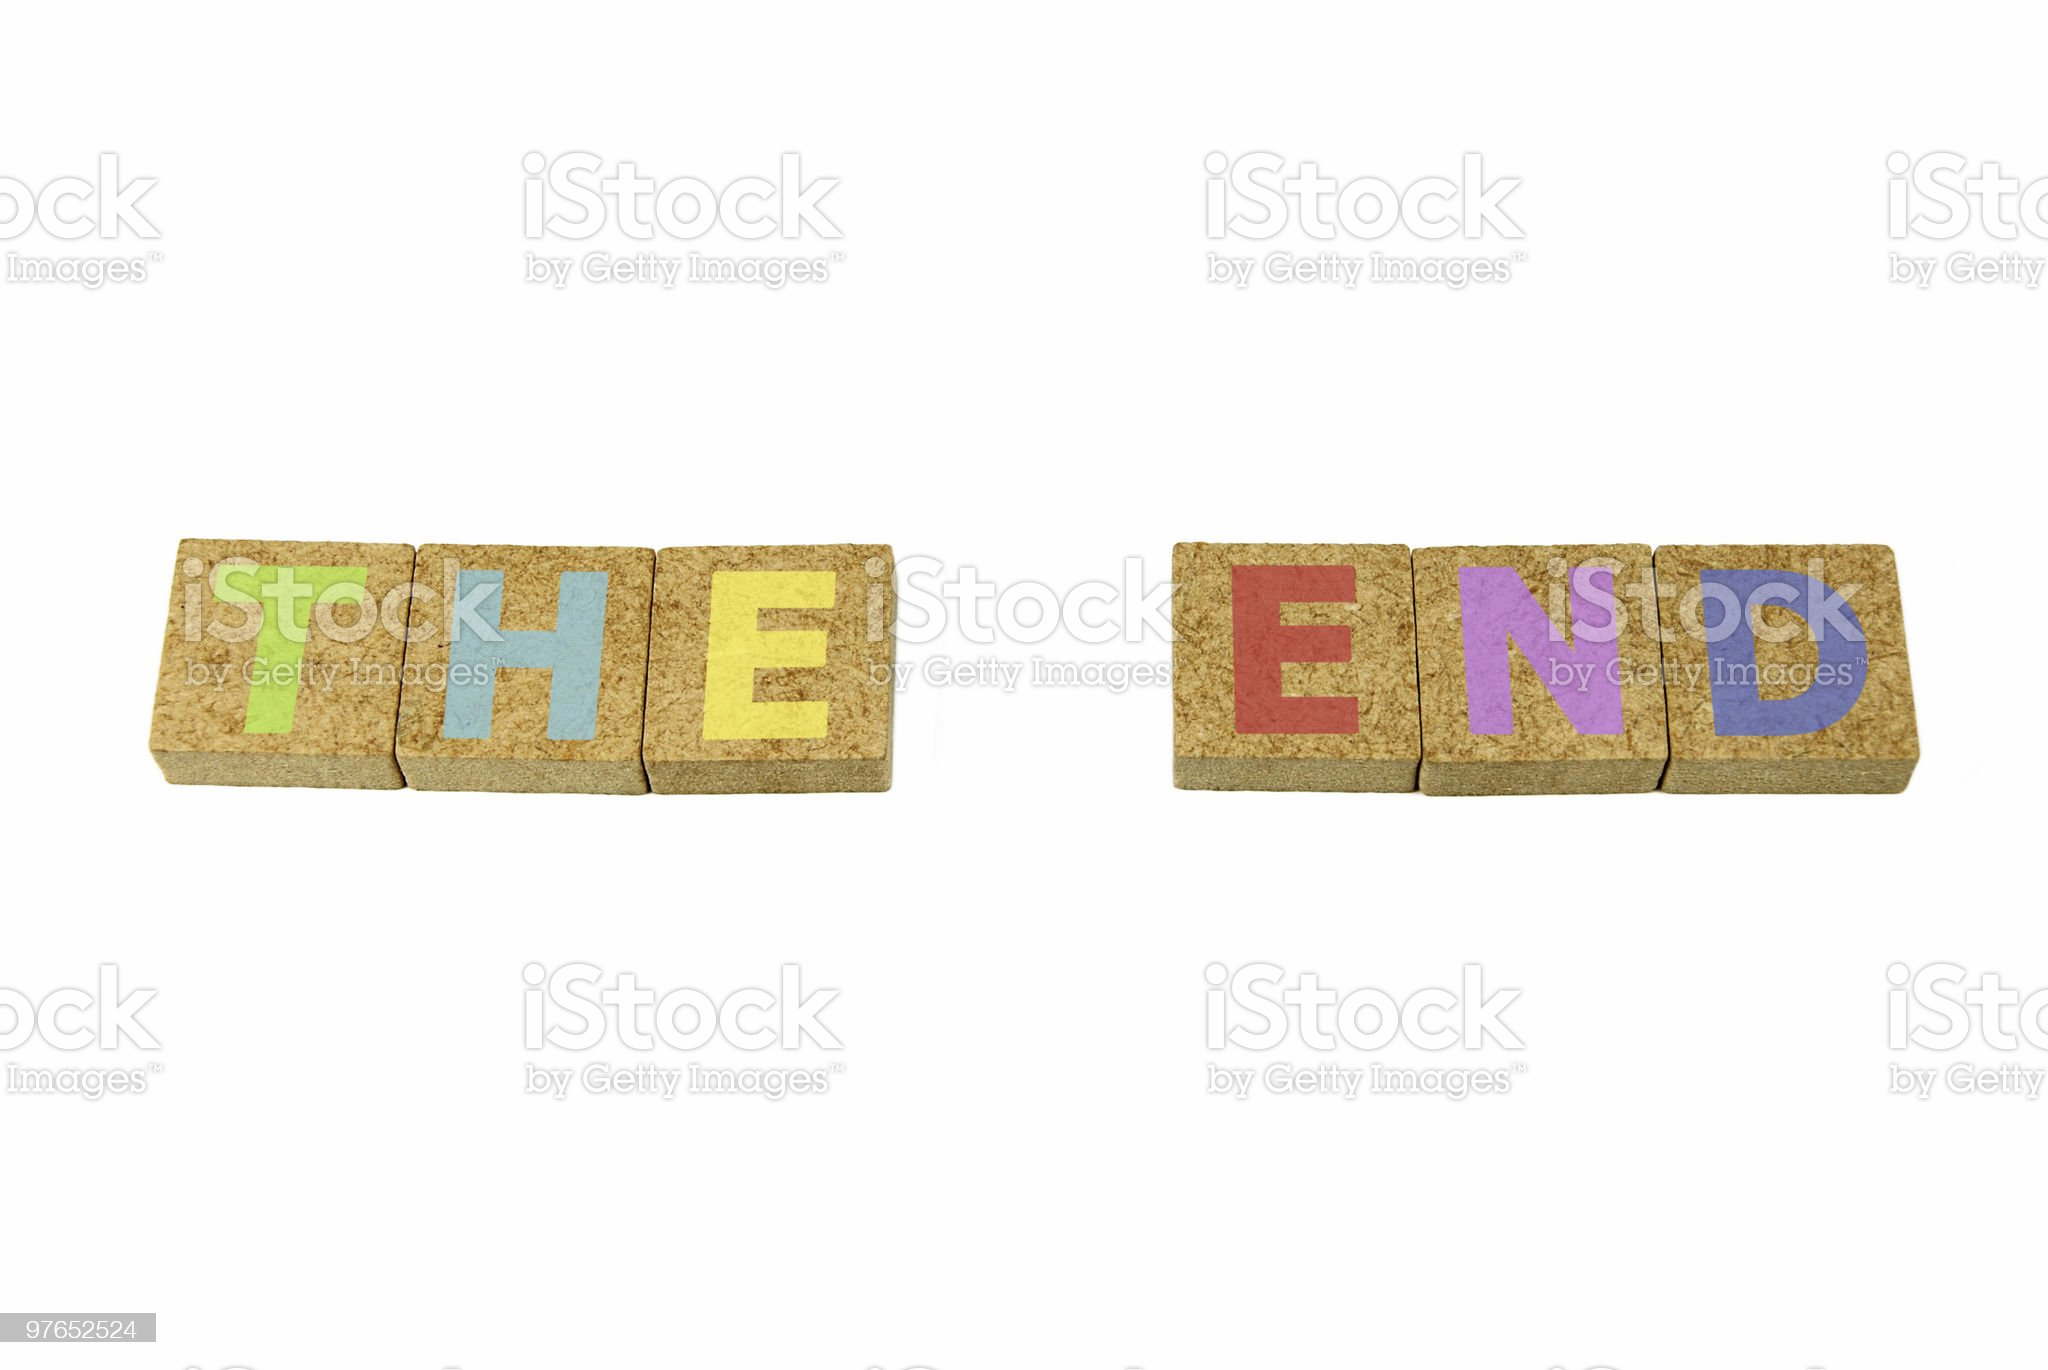 The End - Clipping path royalty-free stock photo